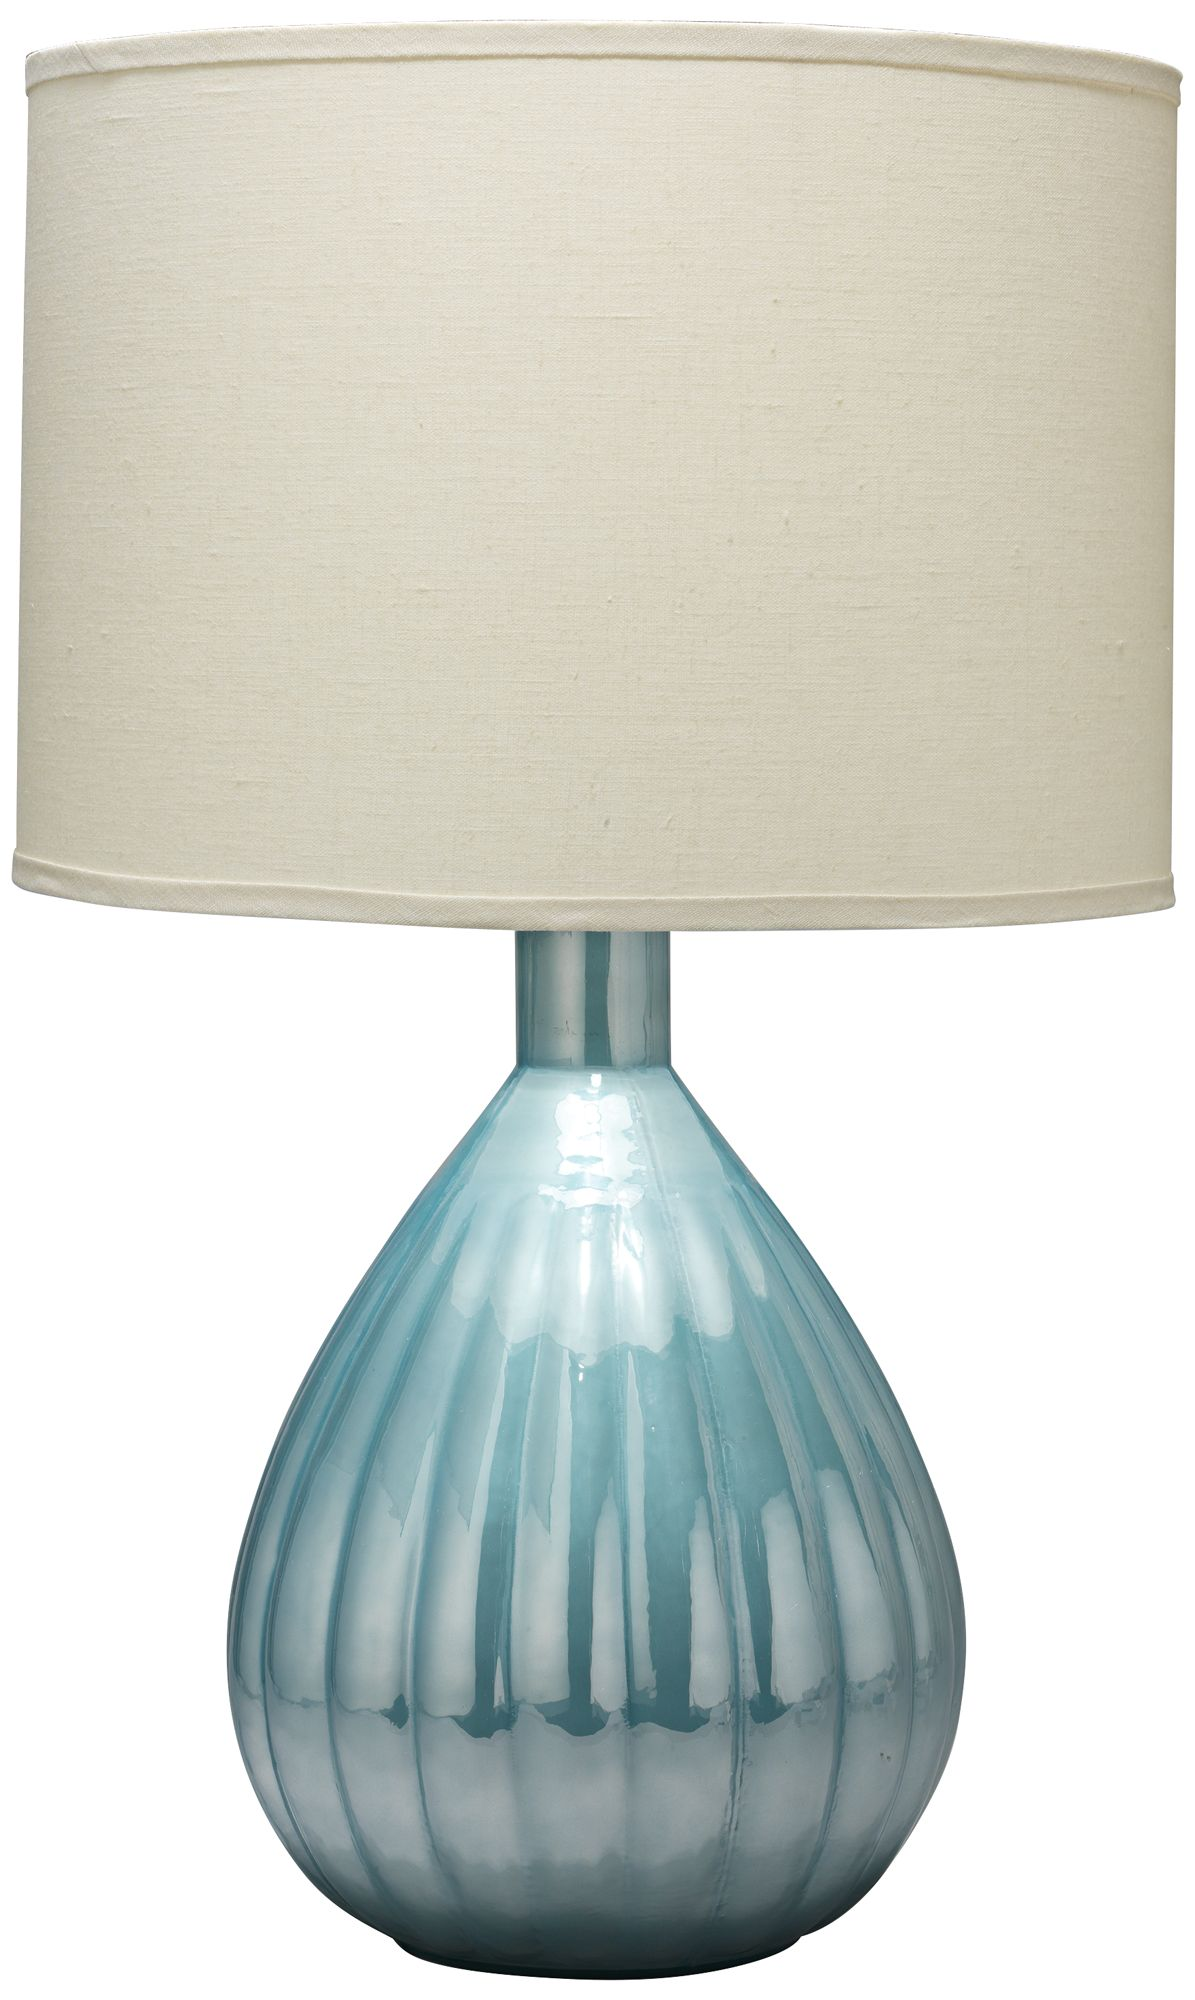 Attractive Jamie Young Akoya Gray Pearl Glass Table Lamp Nice Design